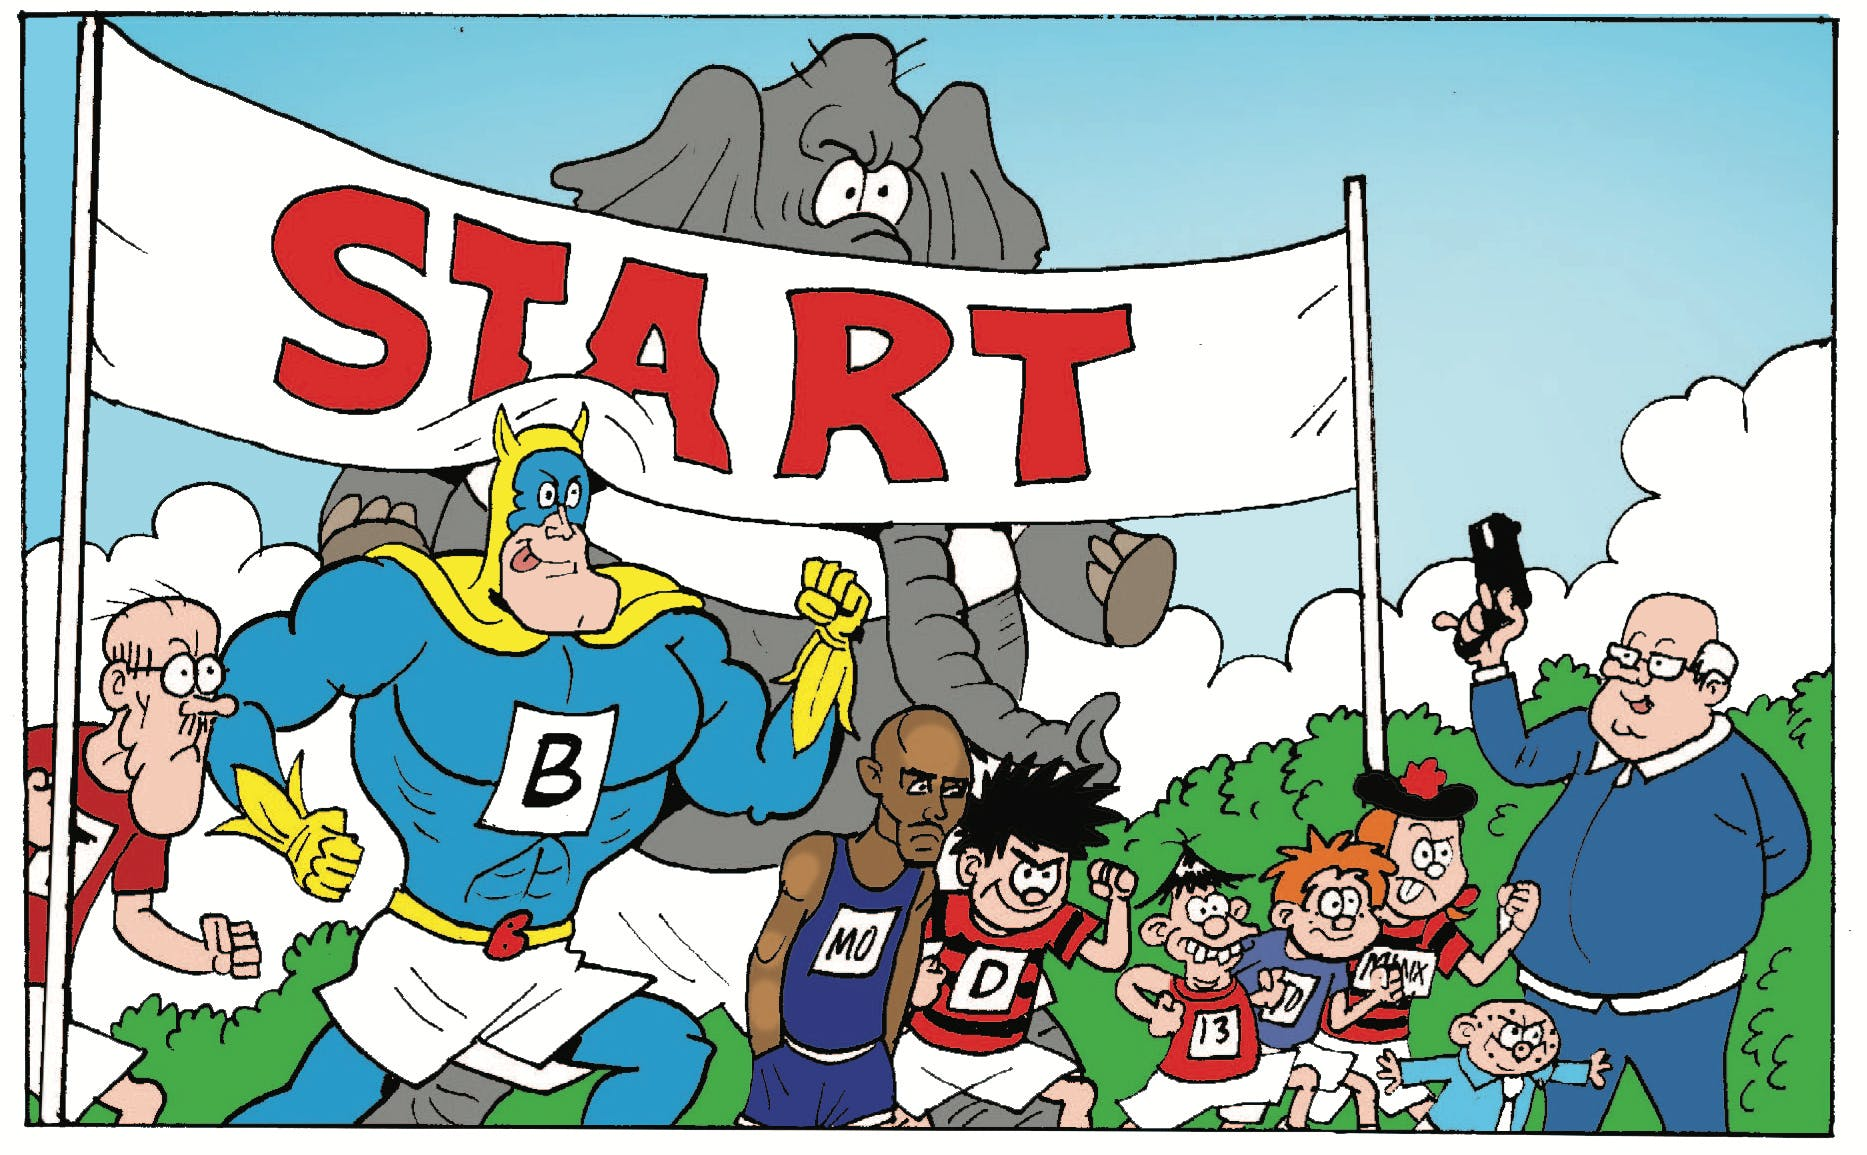 Mo farah takes on Beano's best - Teacher, Bananaman, Dennis, James, Dicky, Minnie, Spotty, and...an elephant?